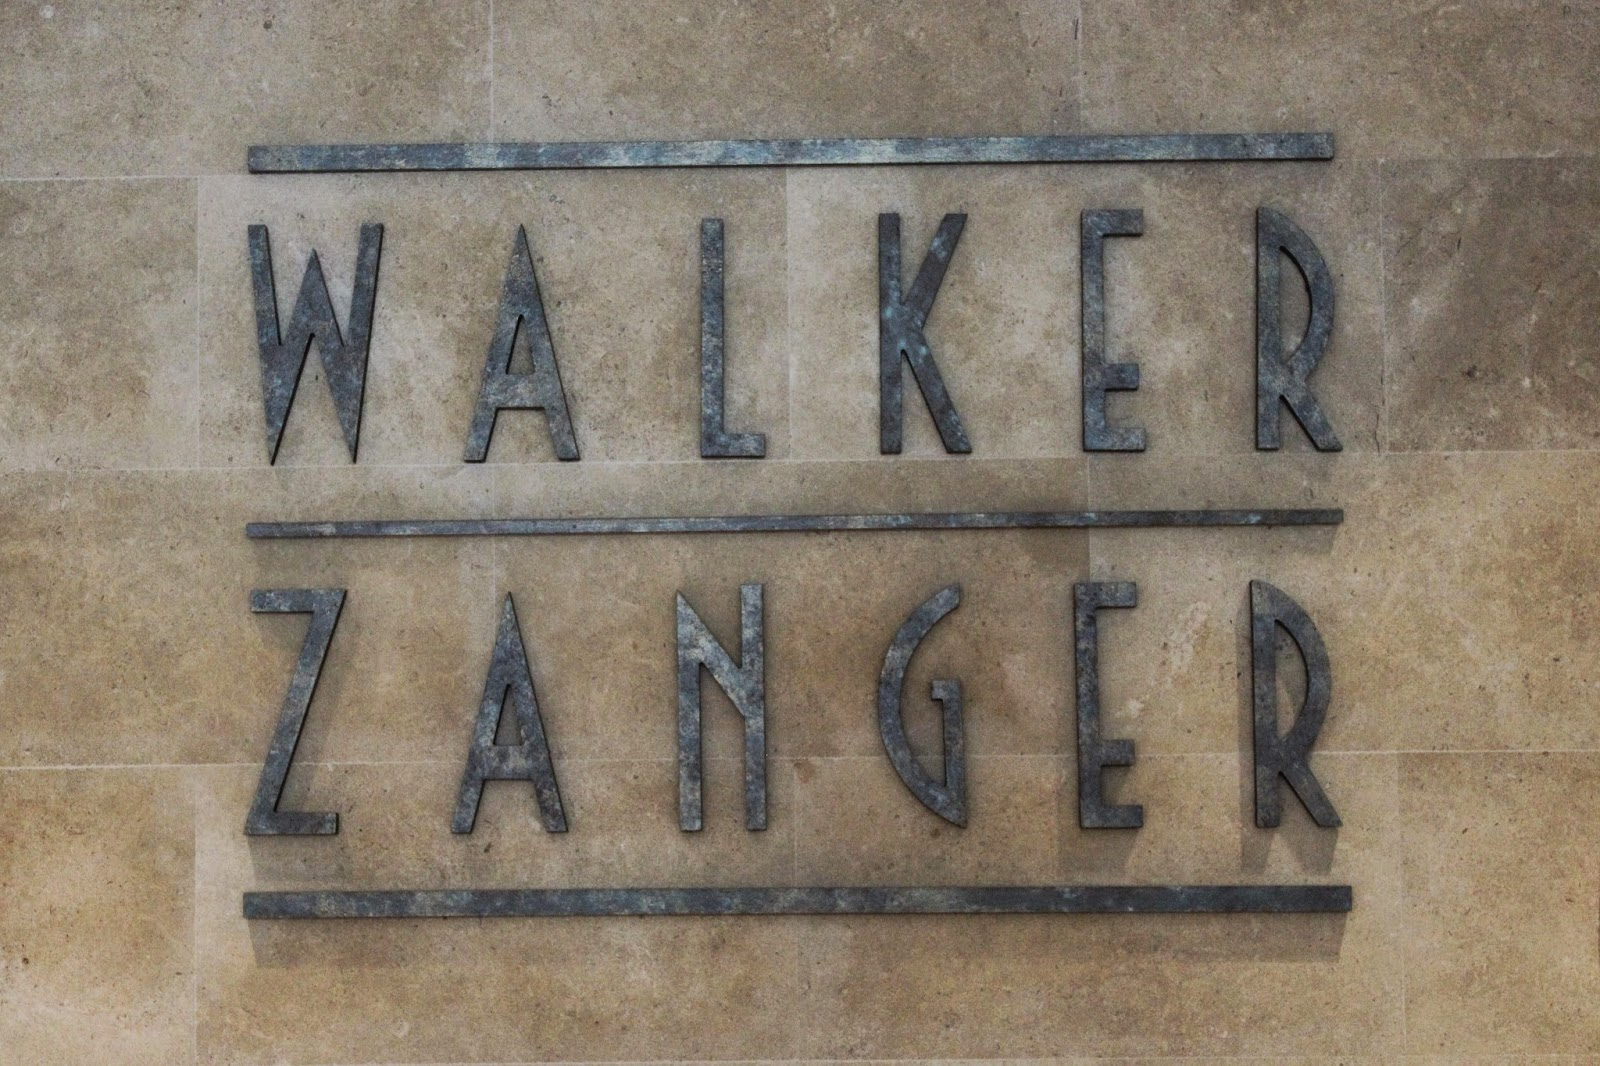 Antique walker zanger grey kitchen full image for chic antiqued walker zanger tile for todayus home dailygadgetfo Image collections